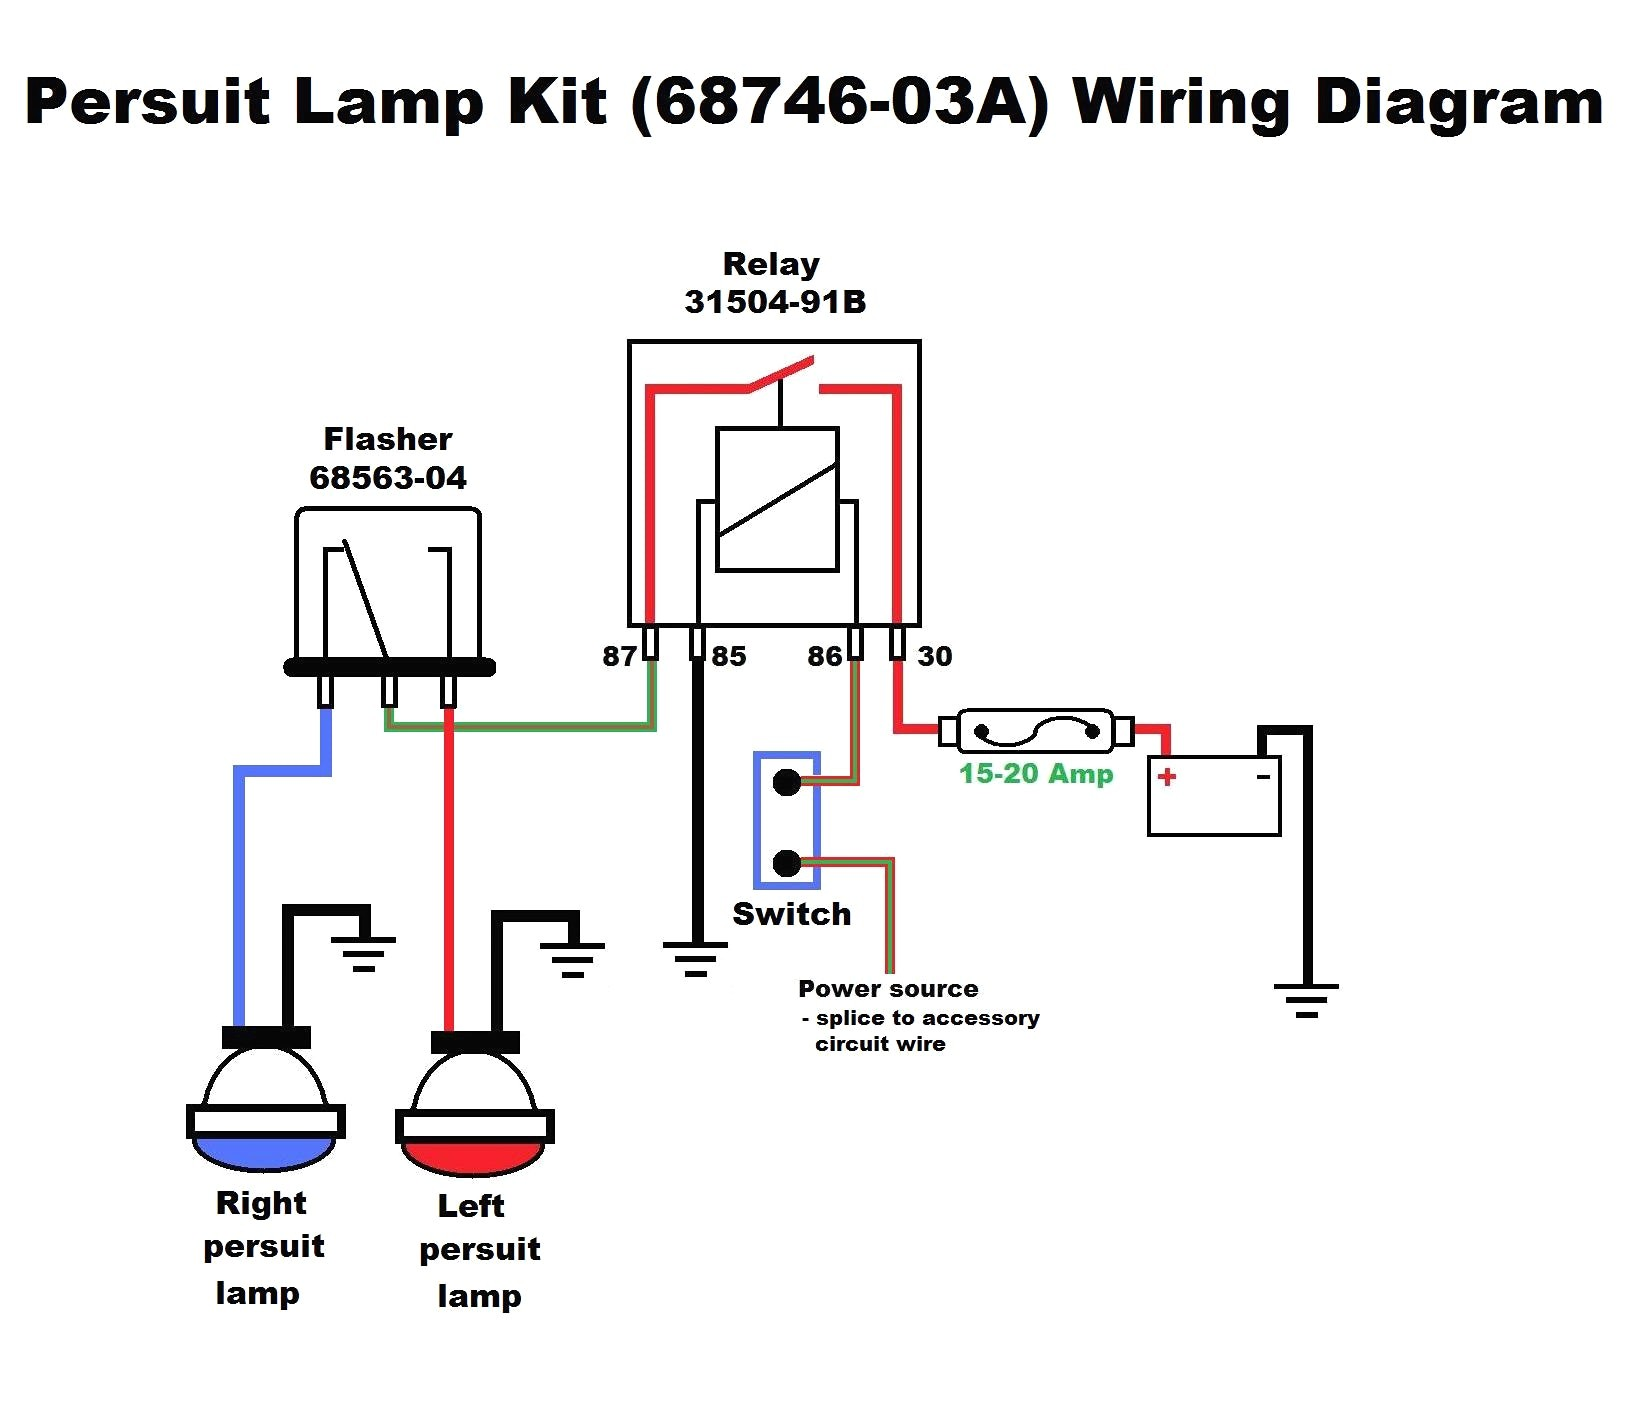 turn signal flasher diagram led turn signal flasher wiring diagram 4 rh detoxicrecenze com Turn Signal Flasher Wiring Schematics 67 gto 4 way flasher wiring diagram